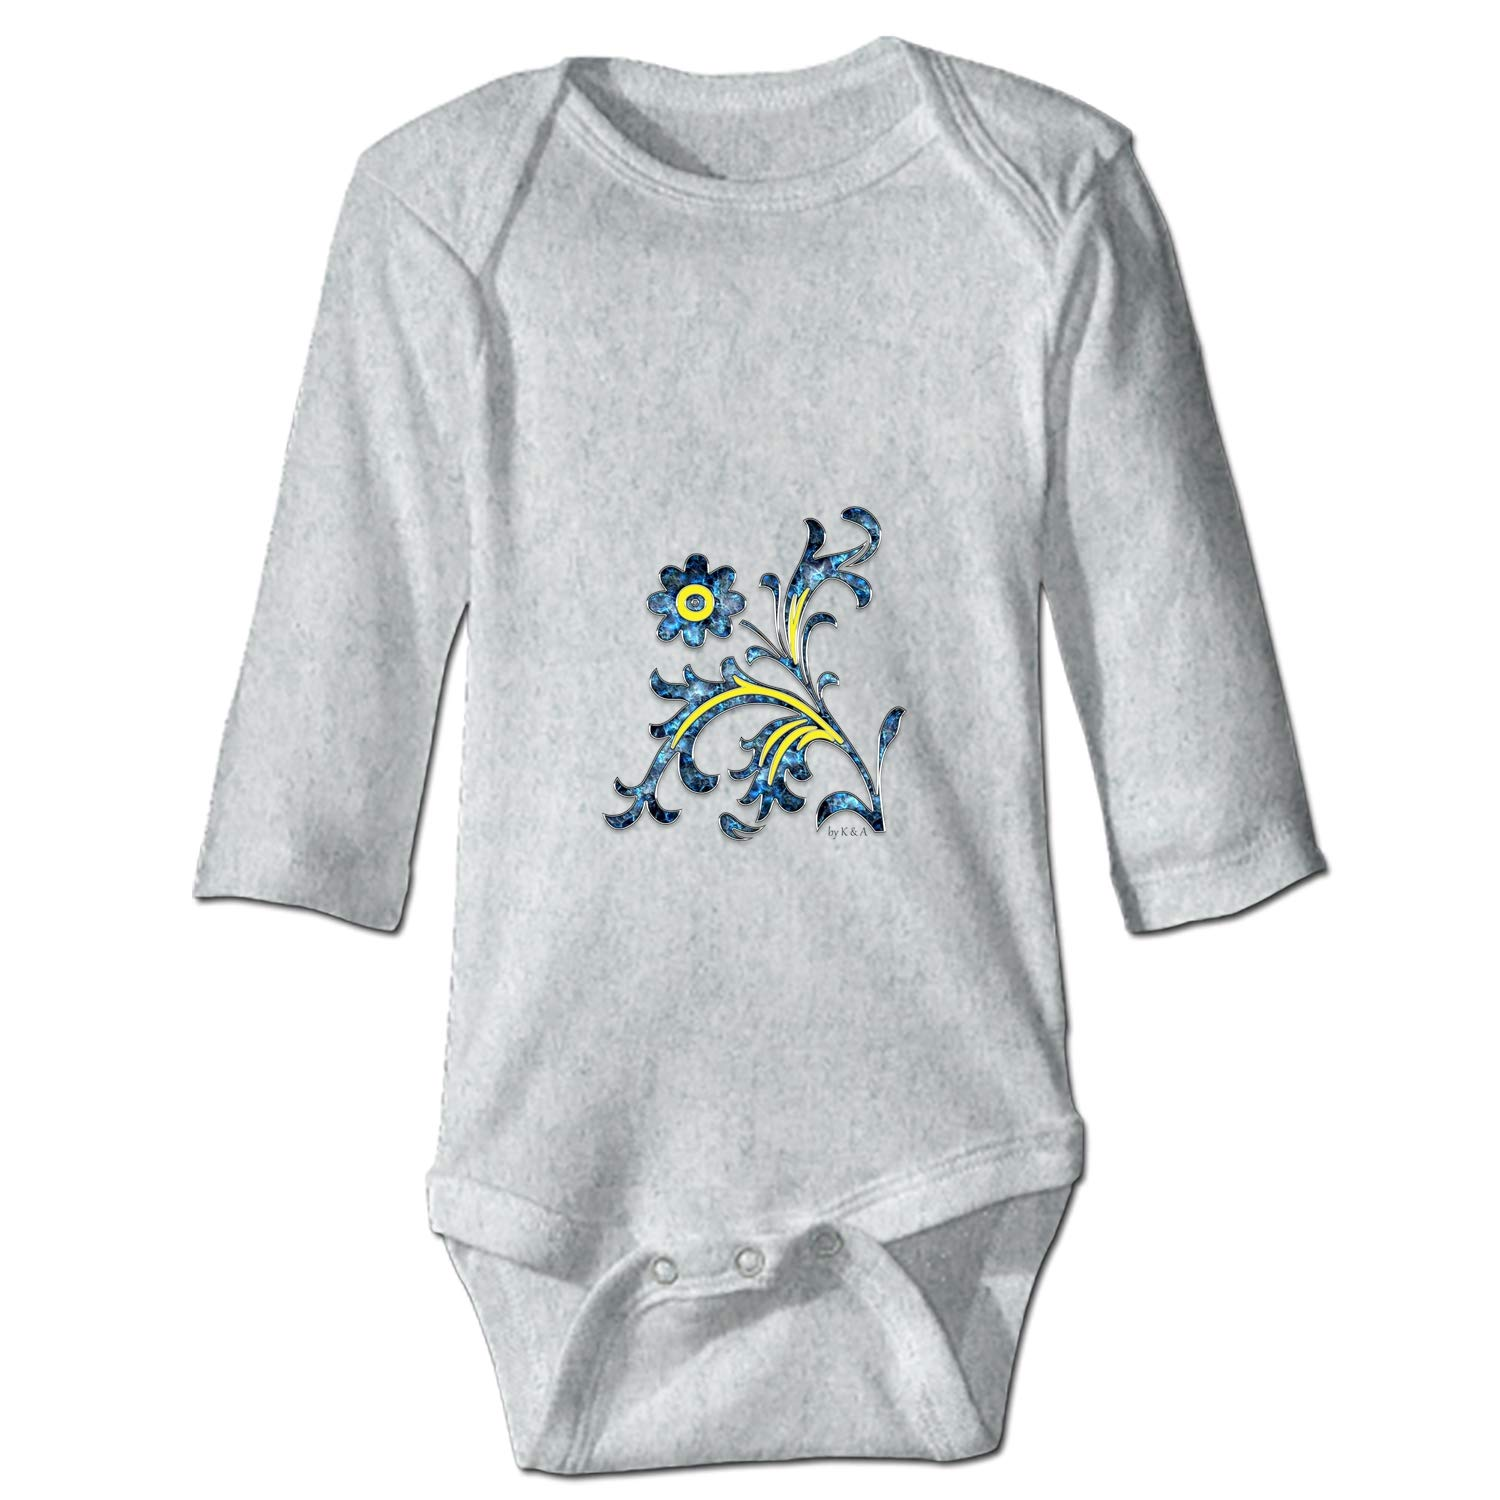 YSKHDBC Cant We All Just Get A Lung Long Sleeve Infant Baby Girl Clothes Onesies Bodysuit Romper Jumpsuit Unisex